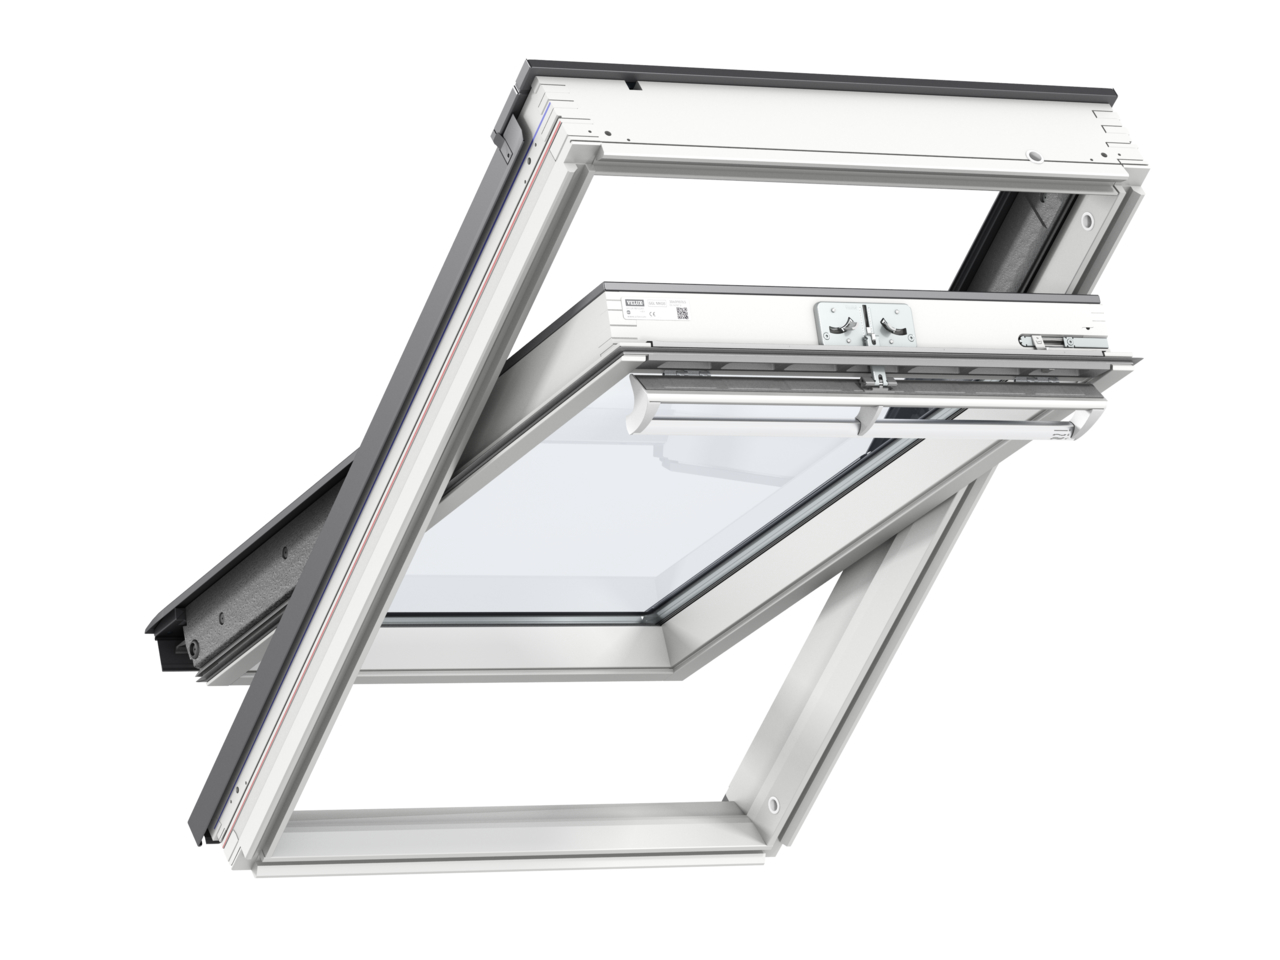 Velux GGL FK06 660 x 1180mm Centre Pivot 70QPane Roof Window - White Painted